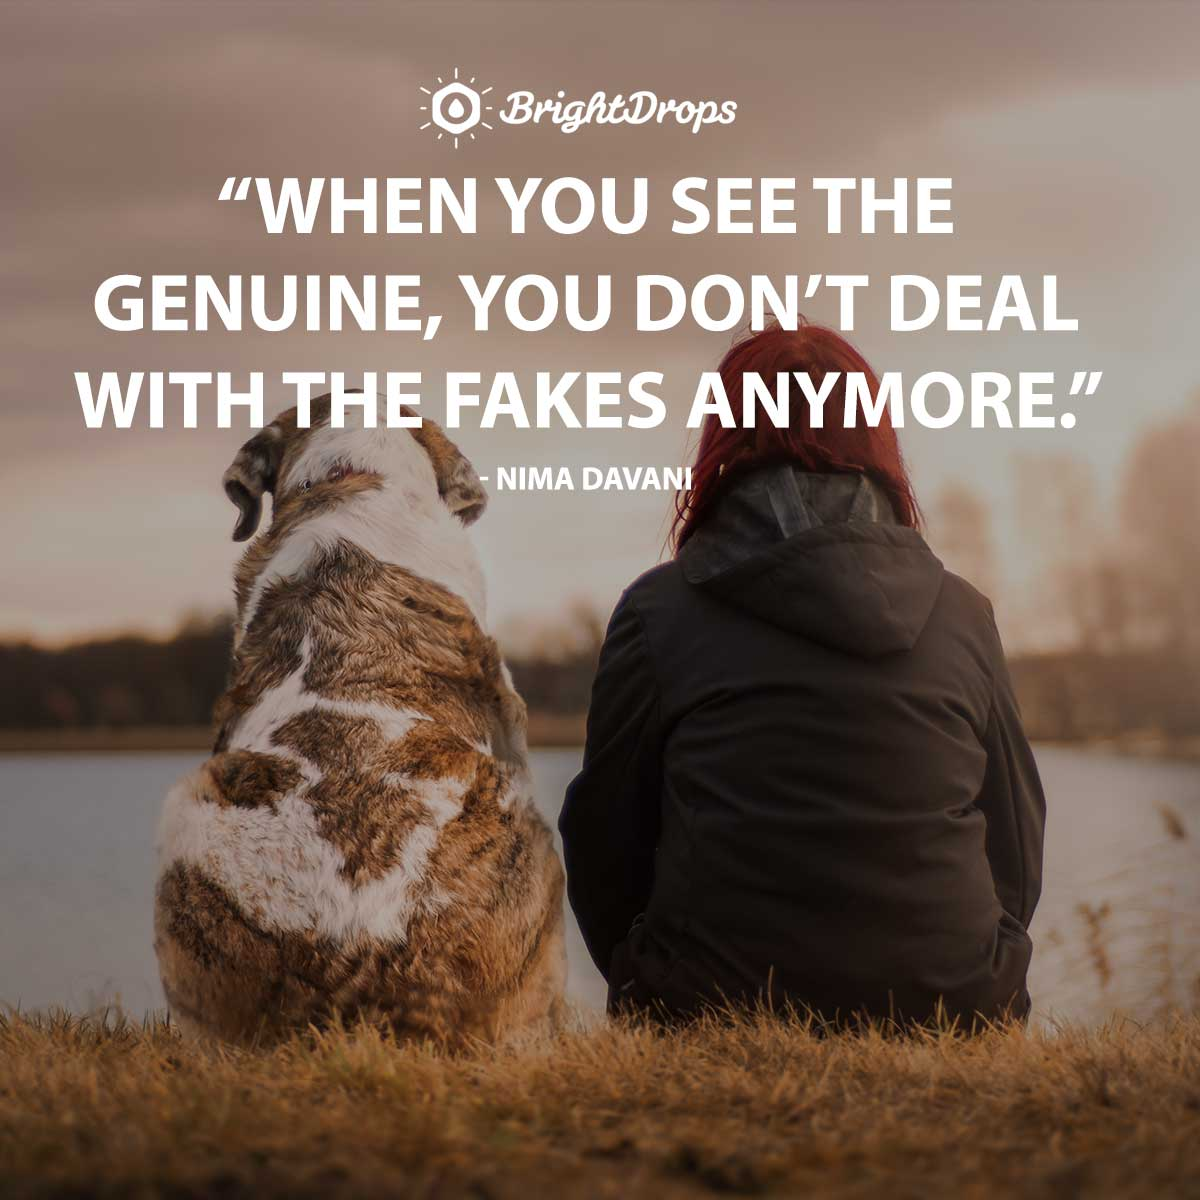 When you see the genuine, you don't deal with the fakes anymore. - Nima Davani